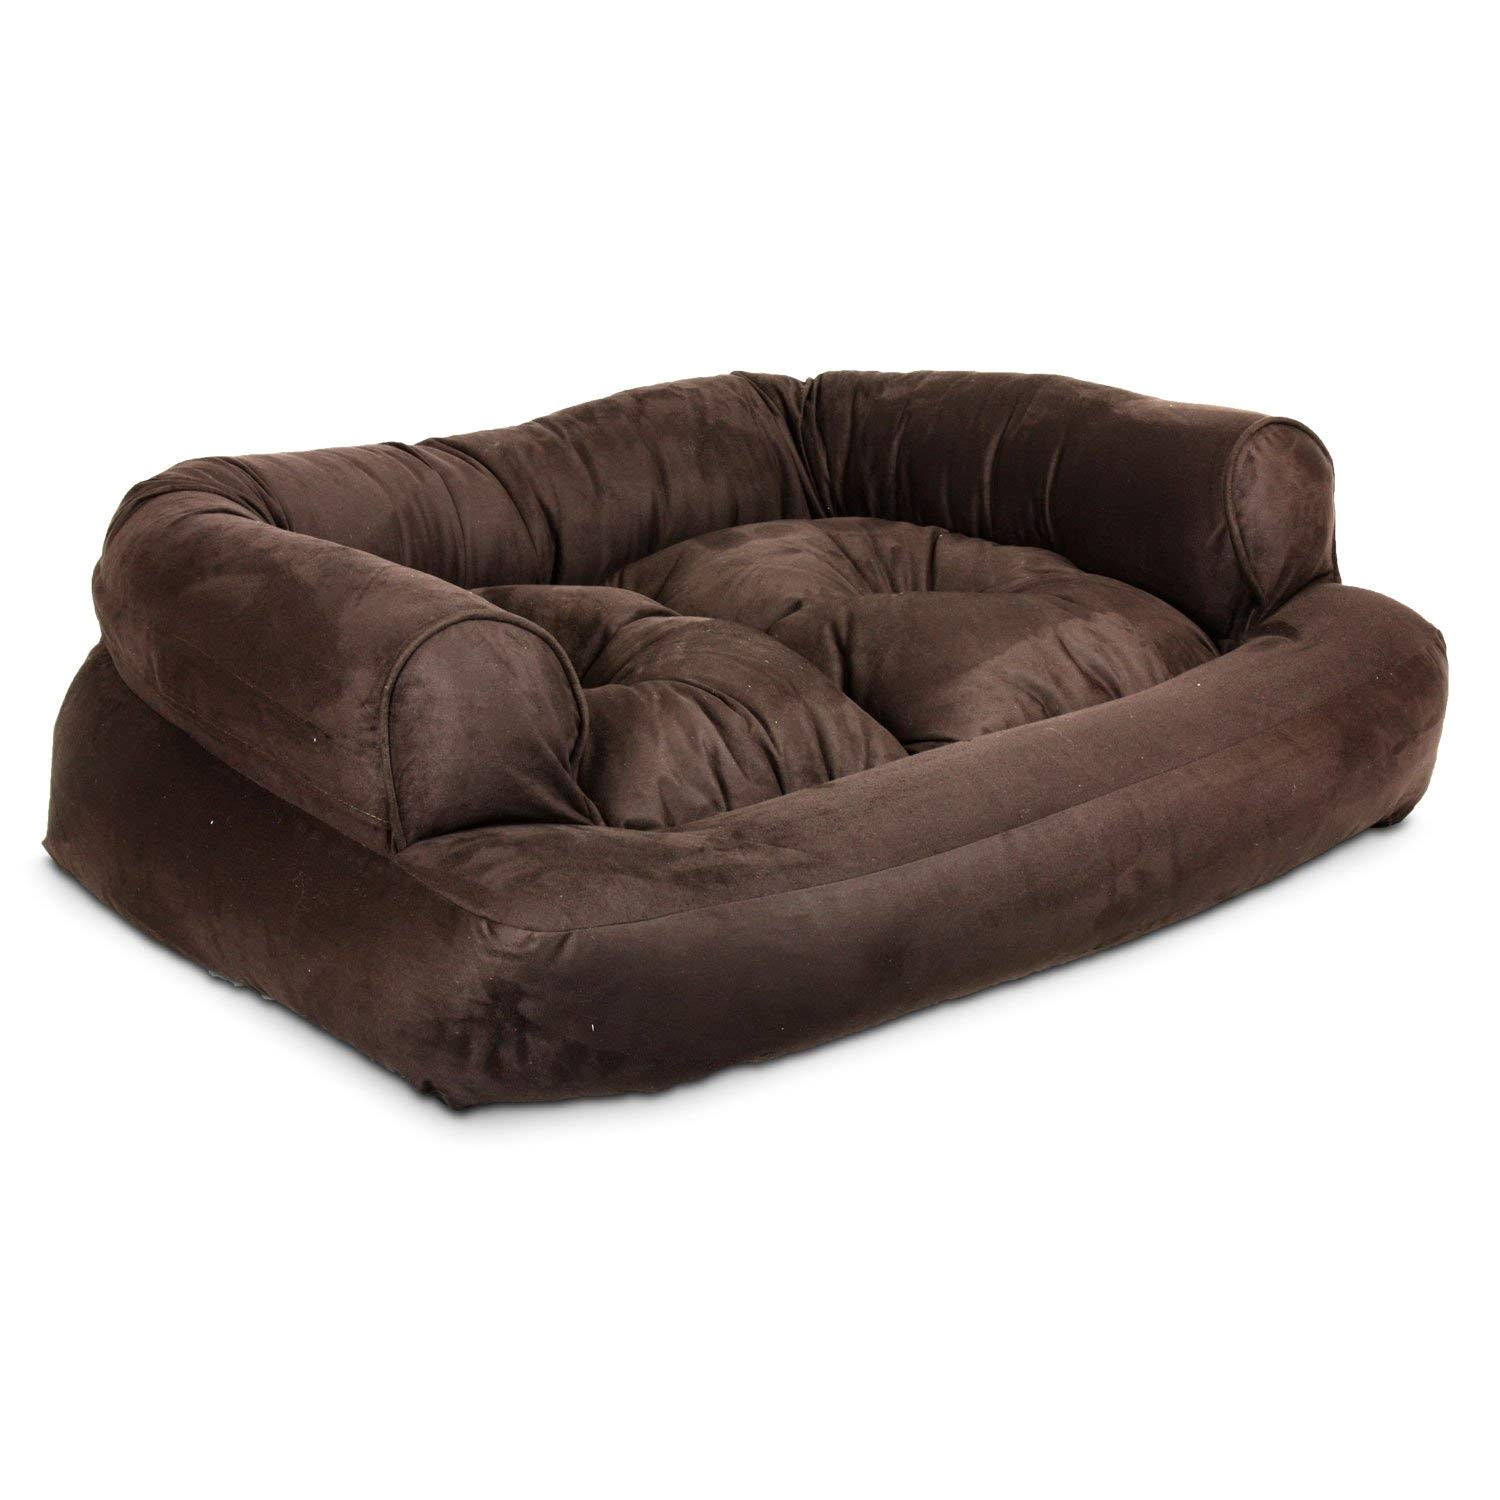 amazon com snoozer overstuffed luxury pet sofa x large hot fudge pet beds pet supplies